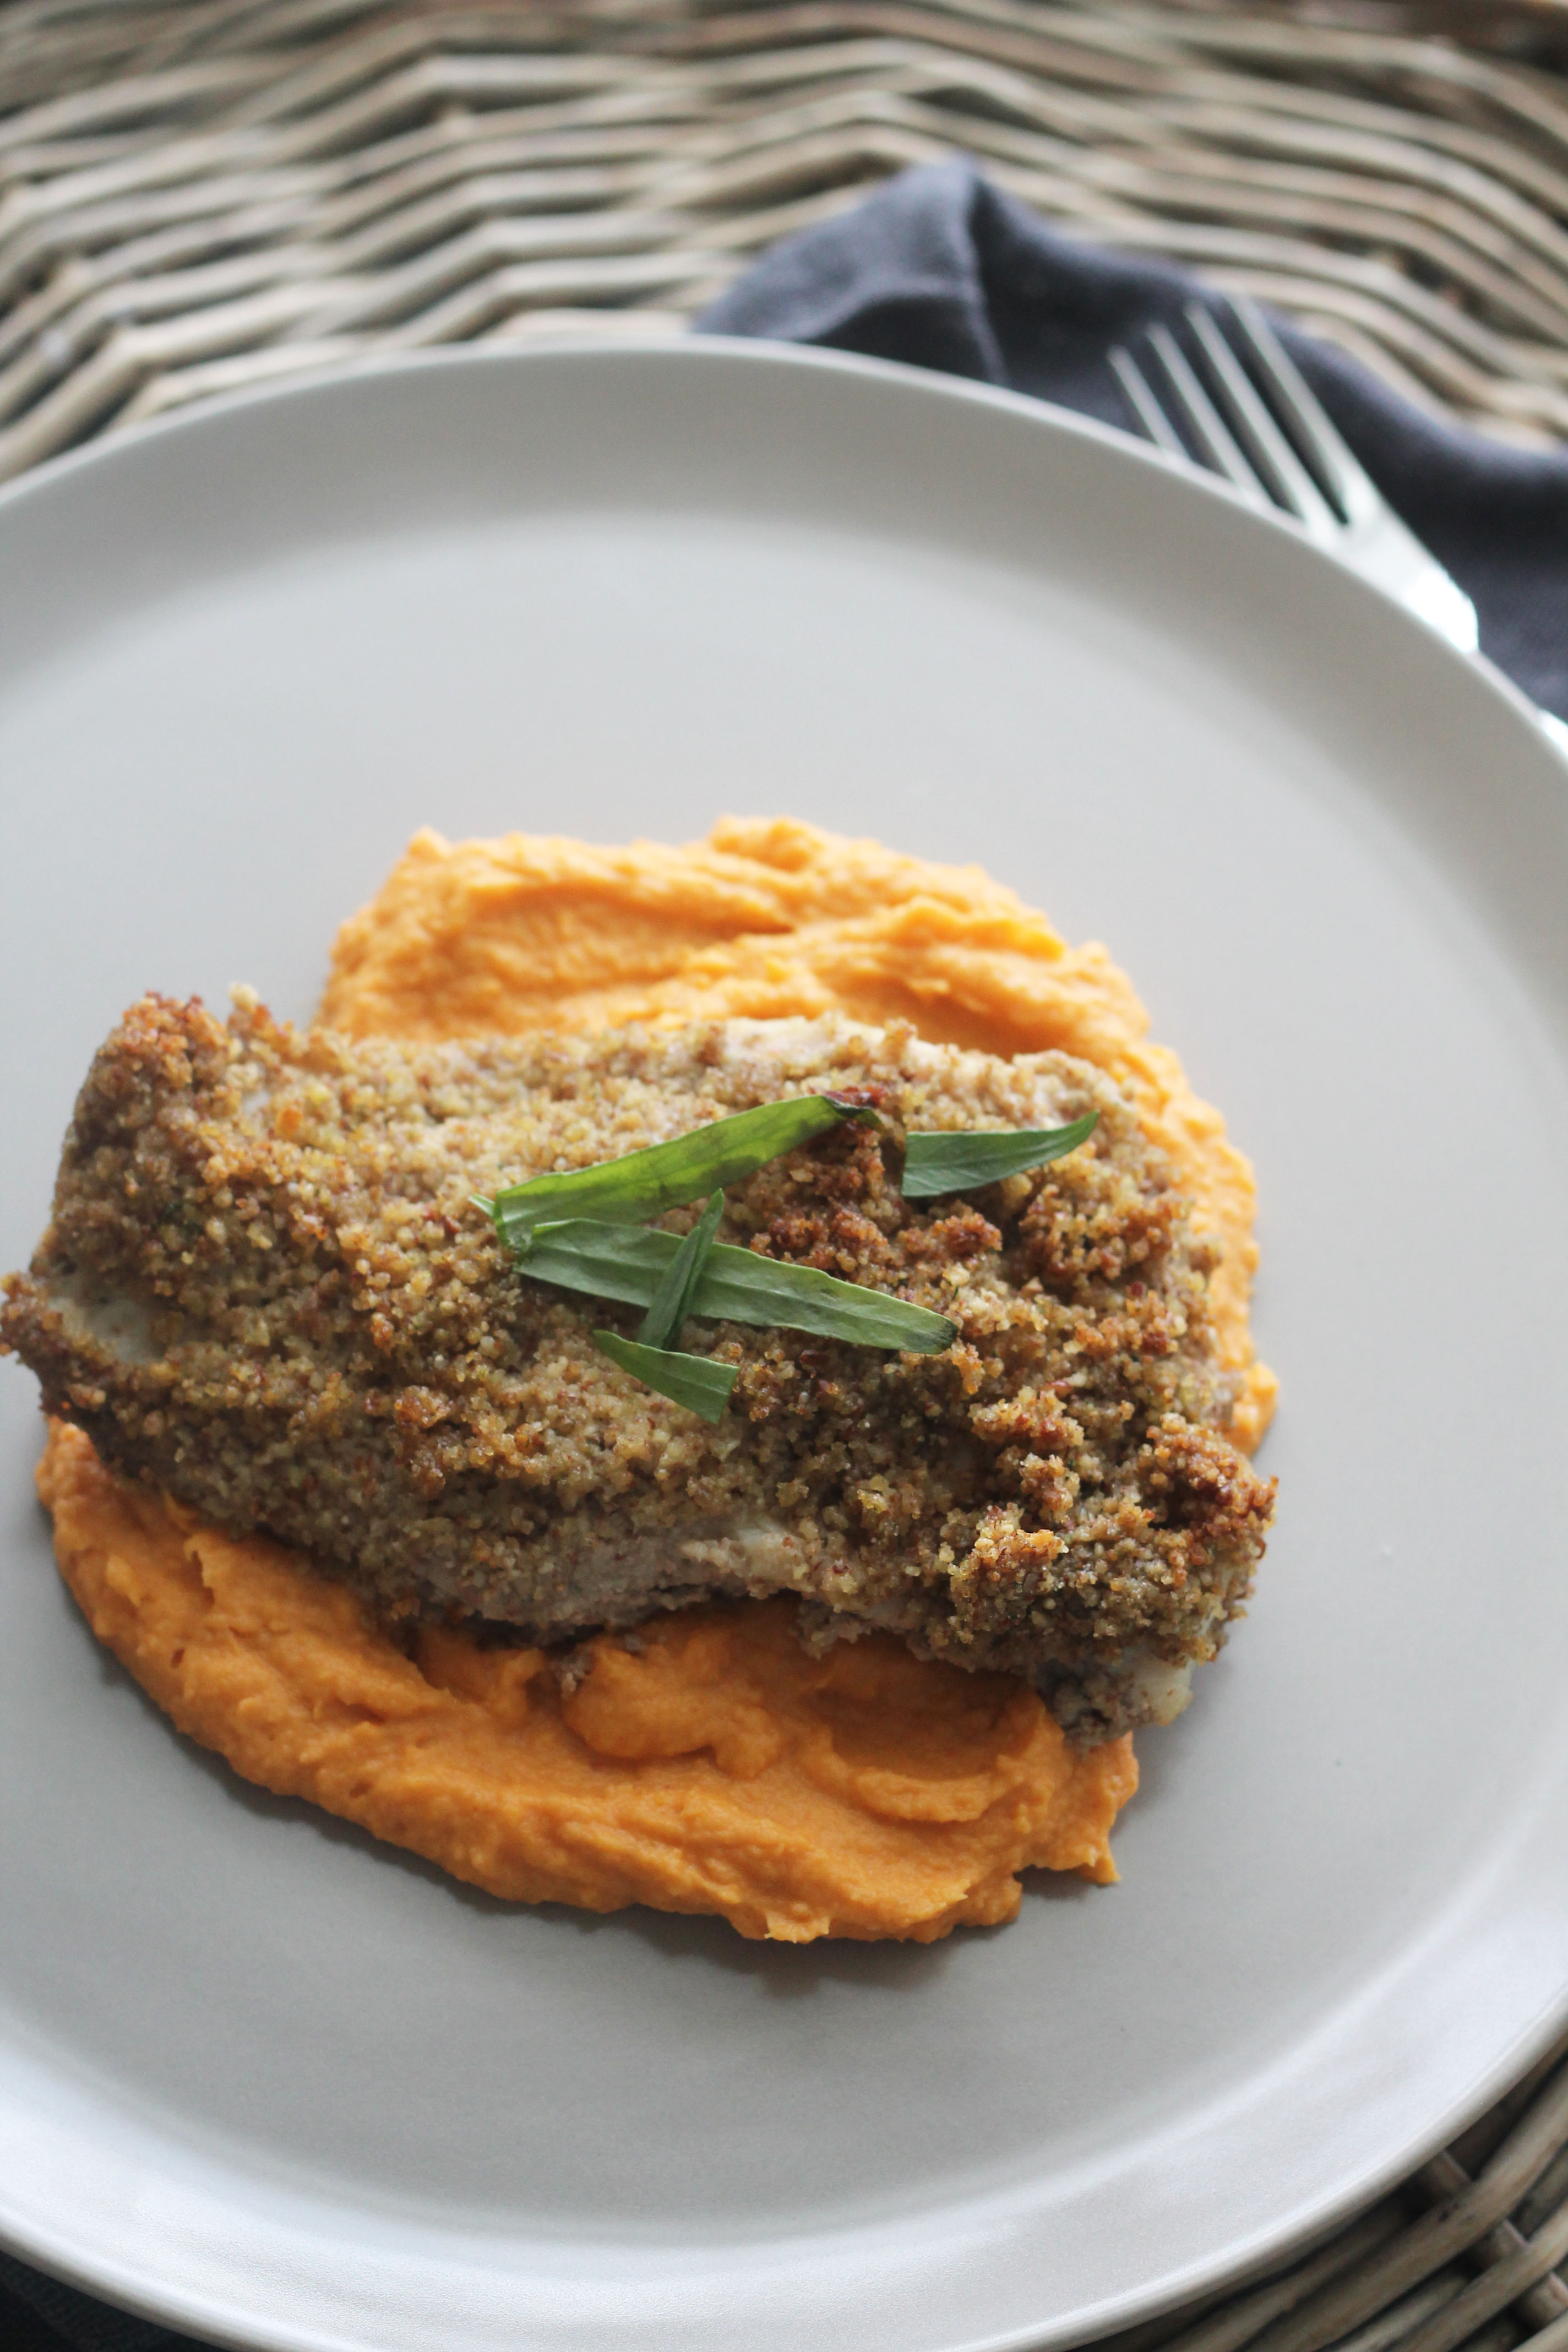 This Pecan Crusted Snapper with Sweet Potato Puree looks fancy enough for a nice dinner but quick and easy to make it a weeknight favorite!